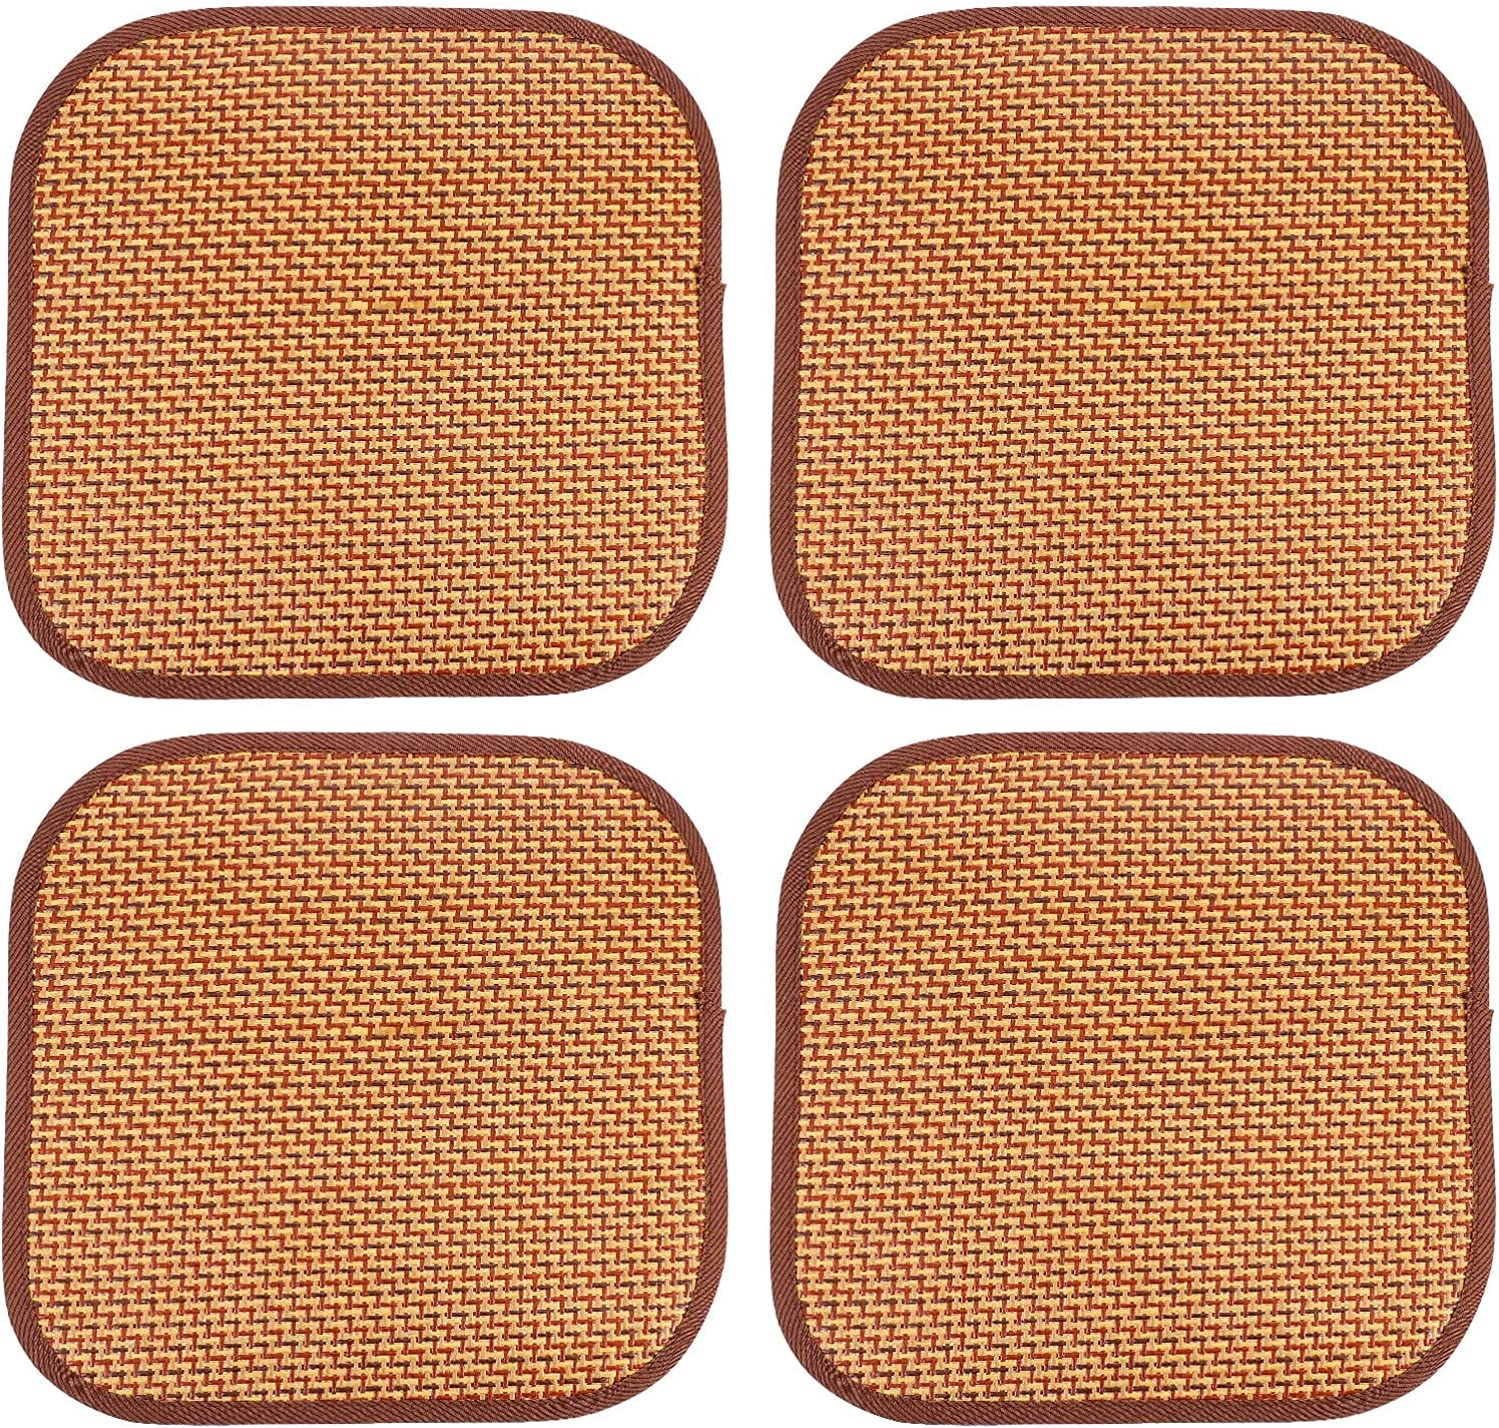 4pcs Grass Rattan Self Cooling Plate Mat Guinea Hamster Pig for 2021new shipping Los Angeles Mall free